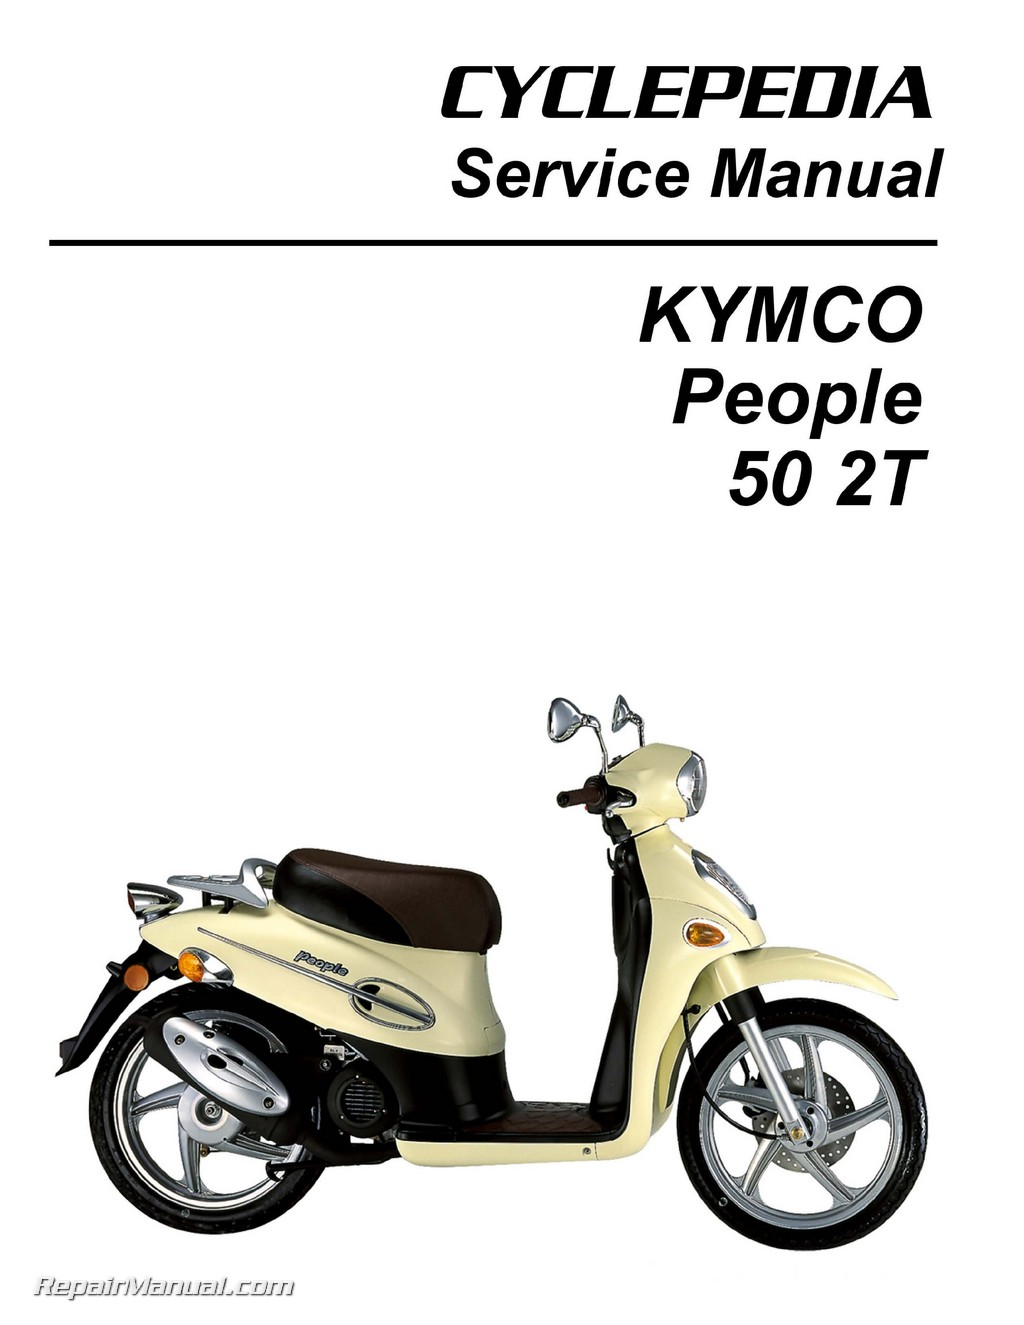 Kymco People 50 Scooter Printed Service Manual border=